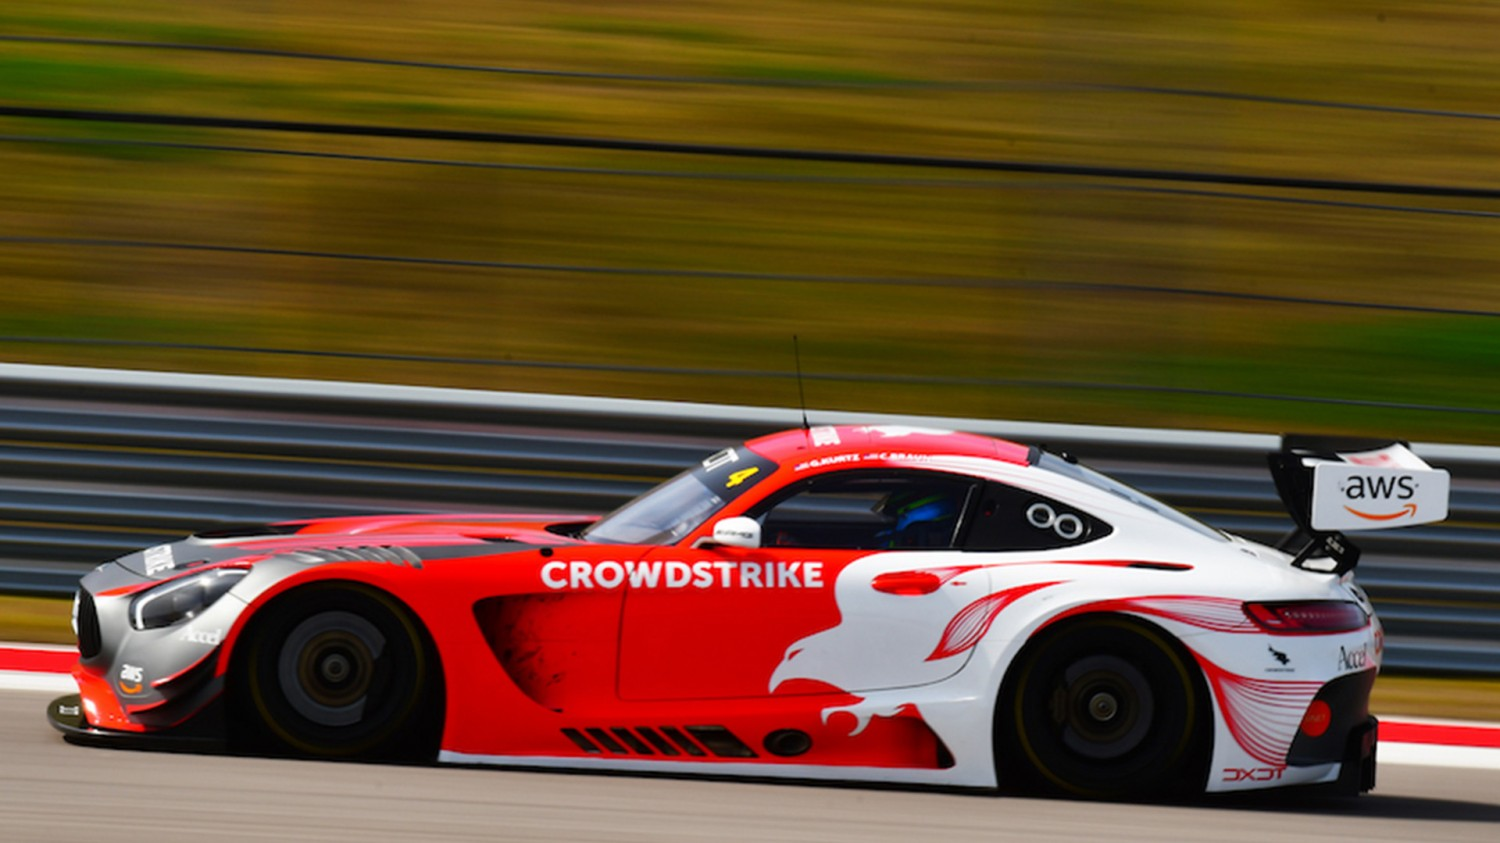 CrowdStrike Readies for GT3 Debut Ahead of Austin Race Season Opener